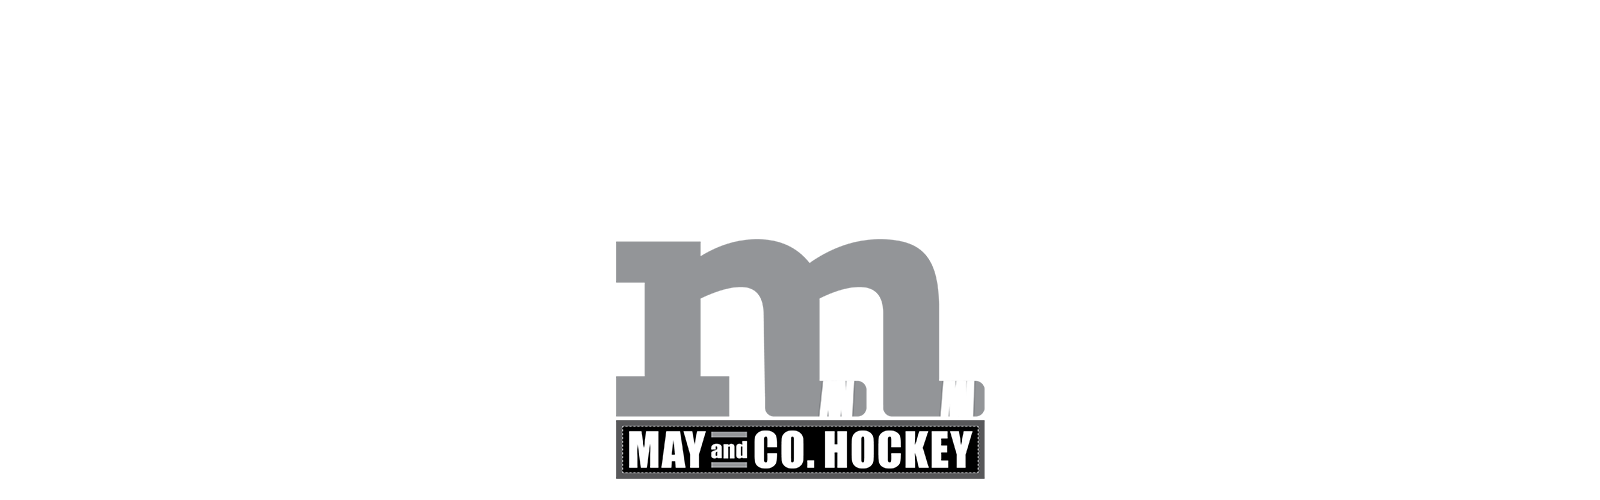 May and Co. Hockey